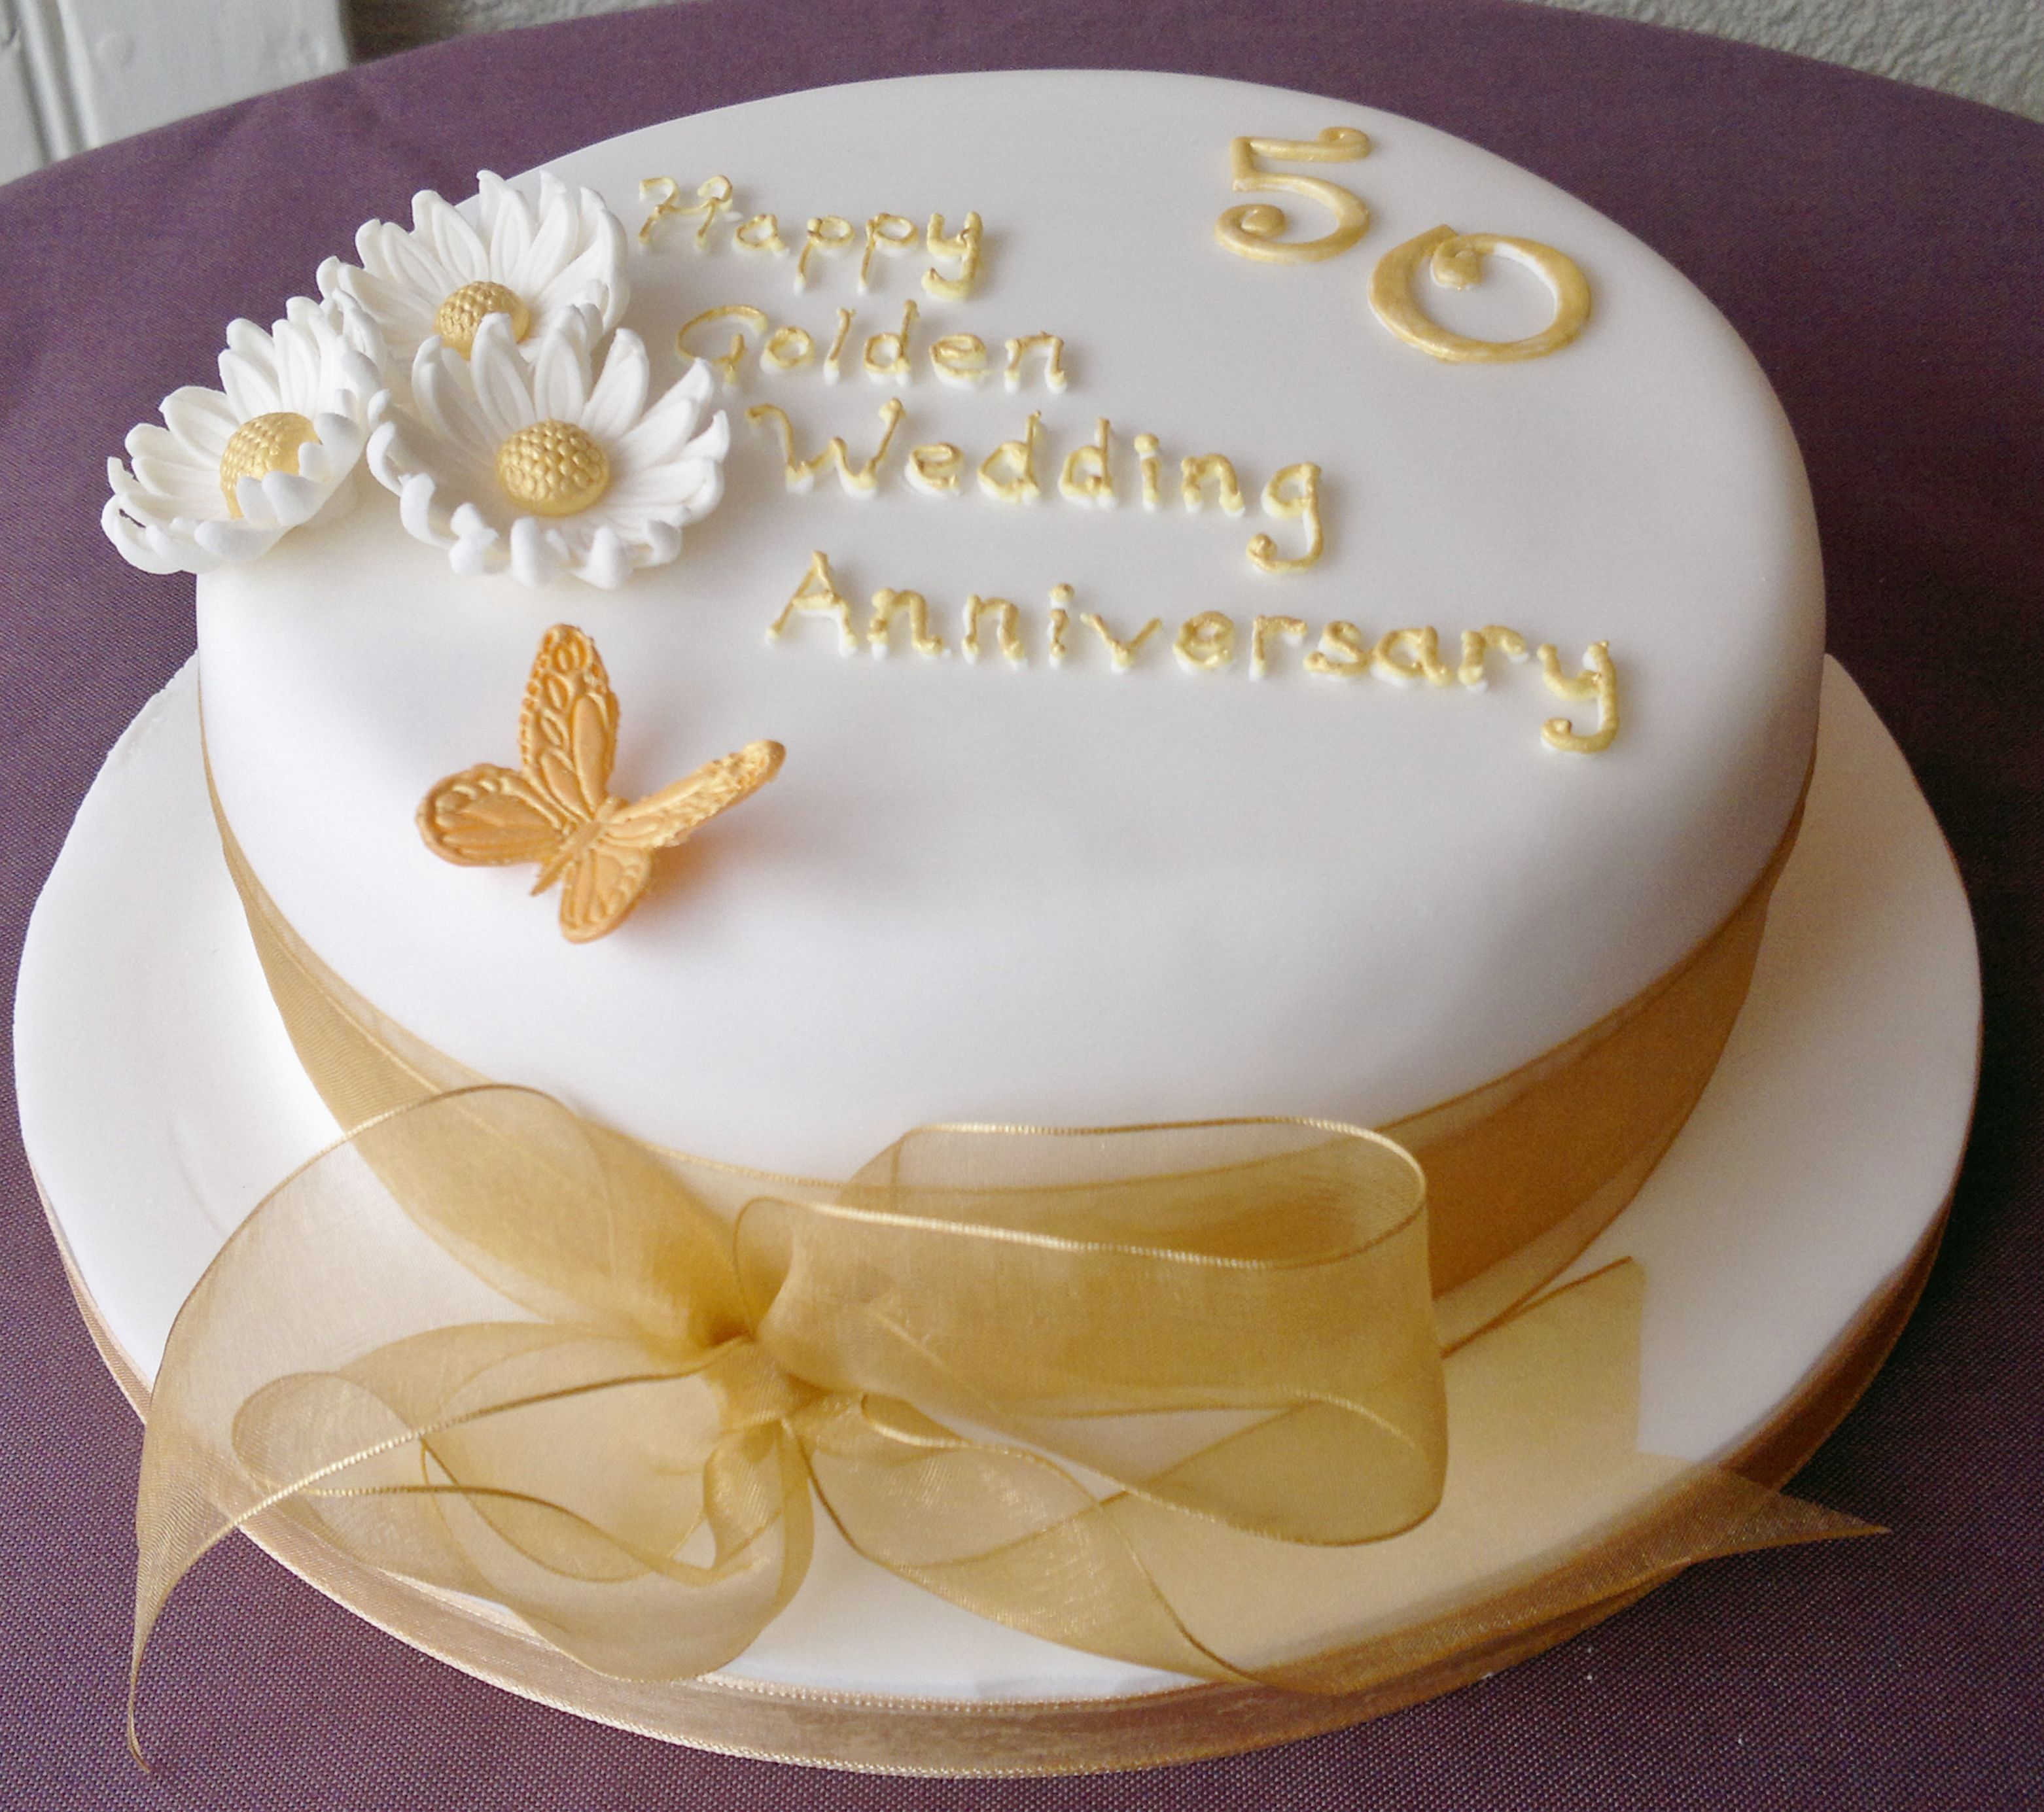 Cake Ideas For Wedding Anniversary: Golden Wedding Anniversary Cakes - Google Search